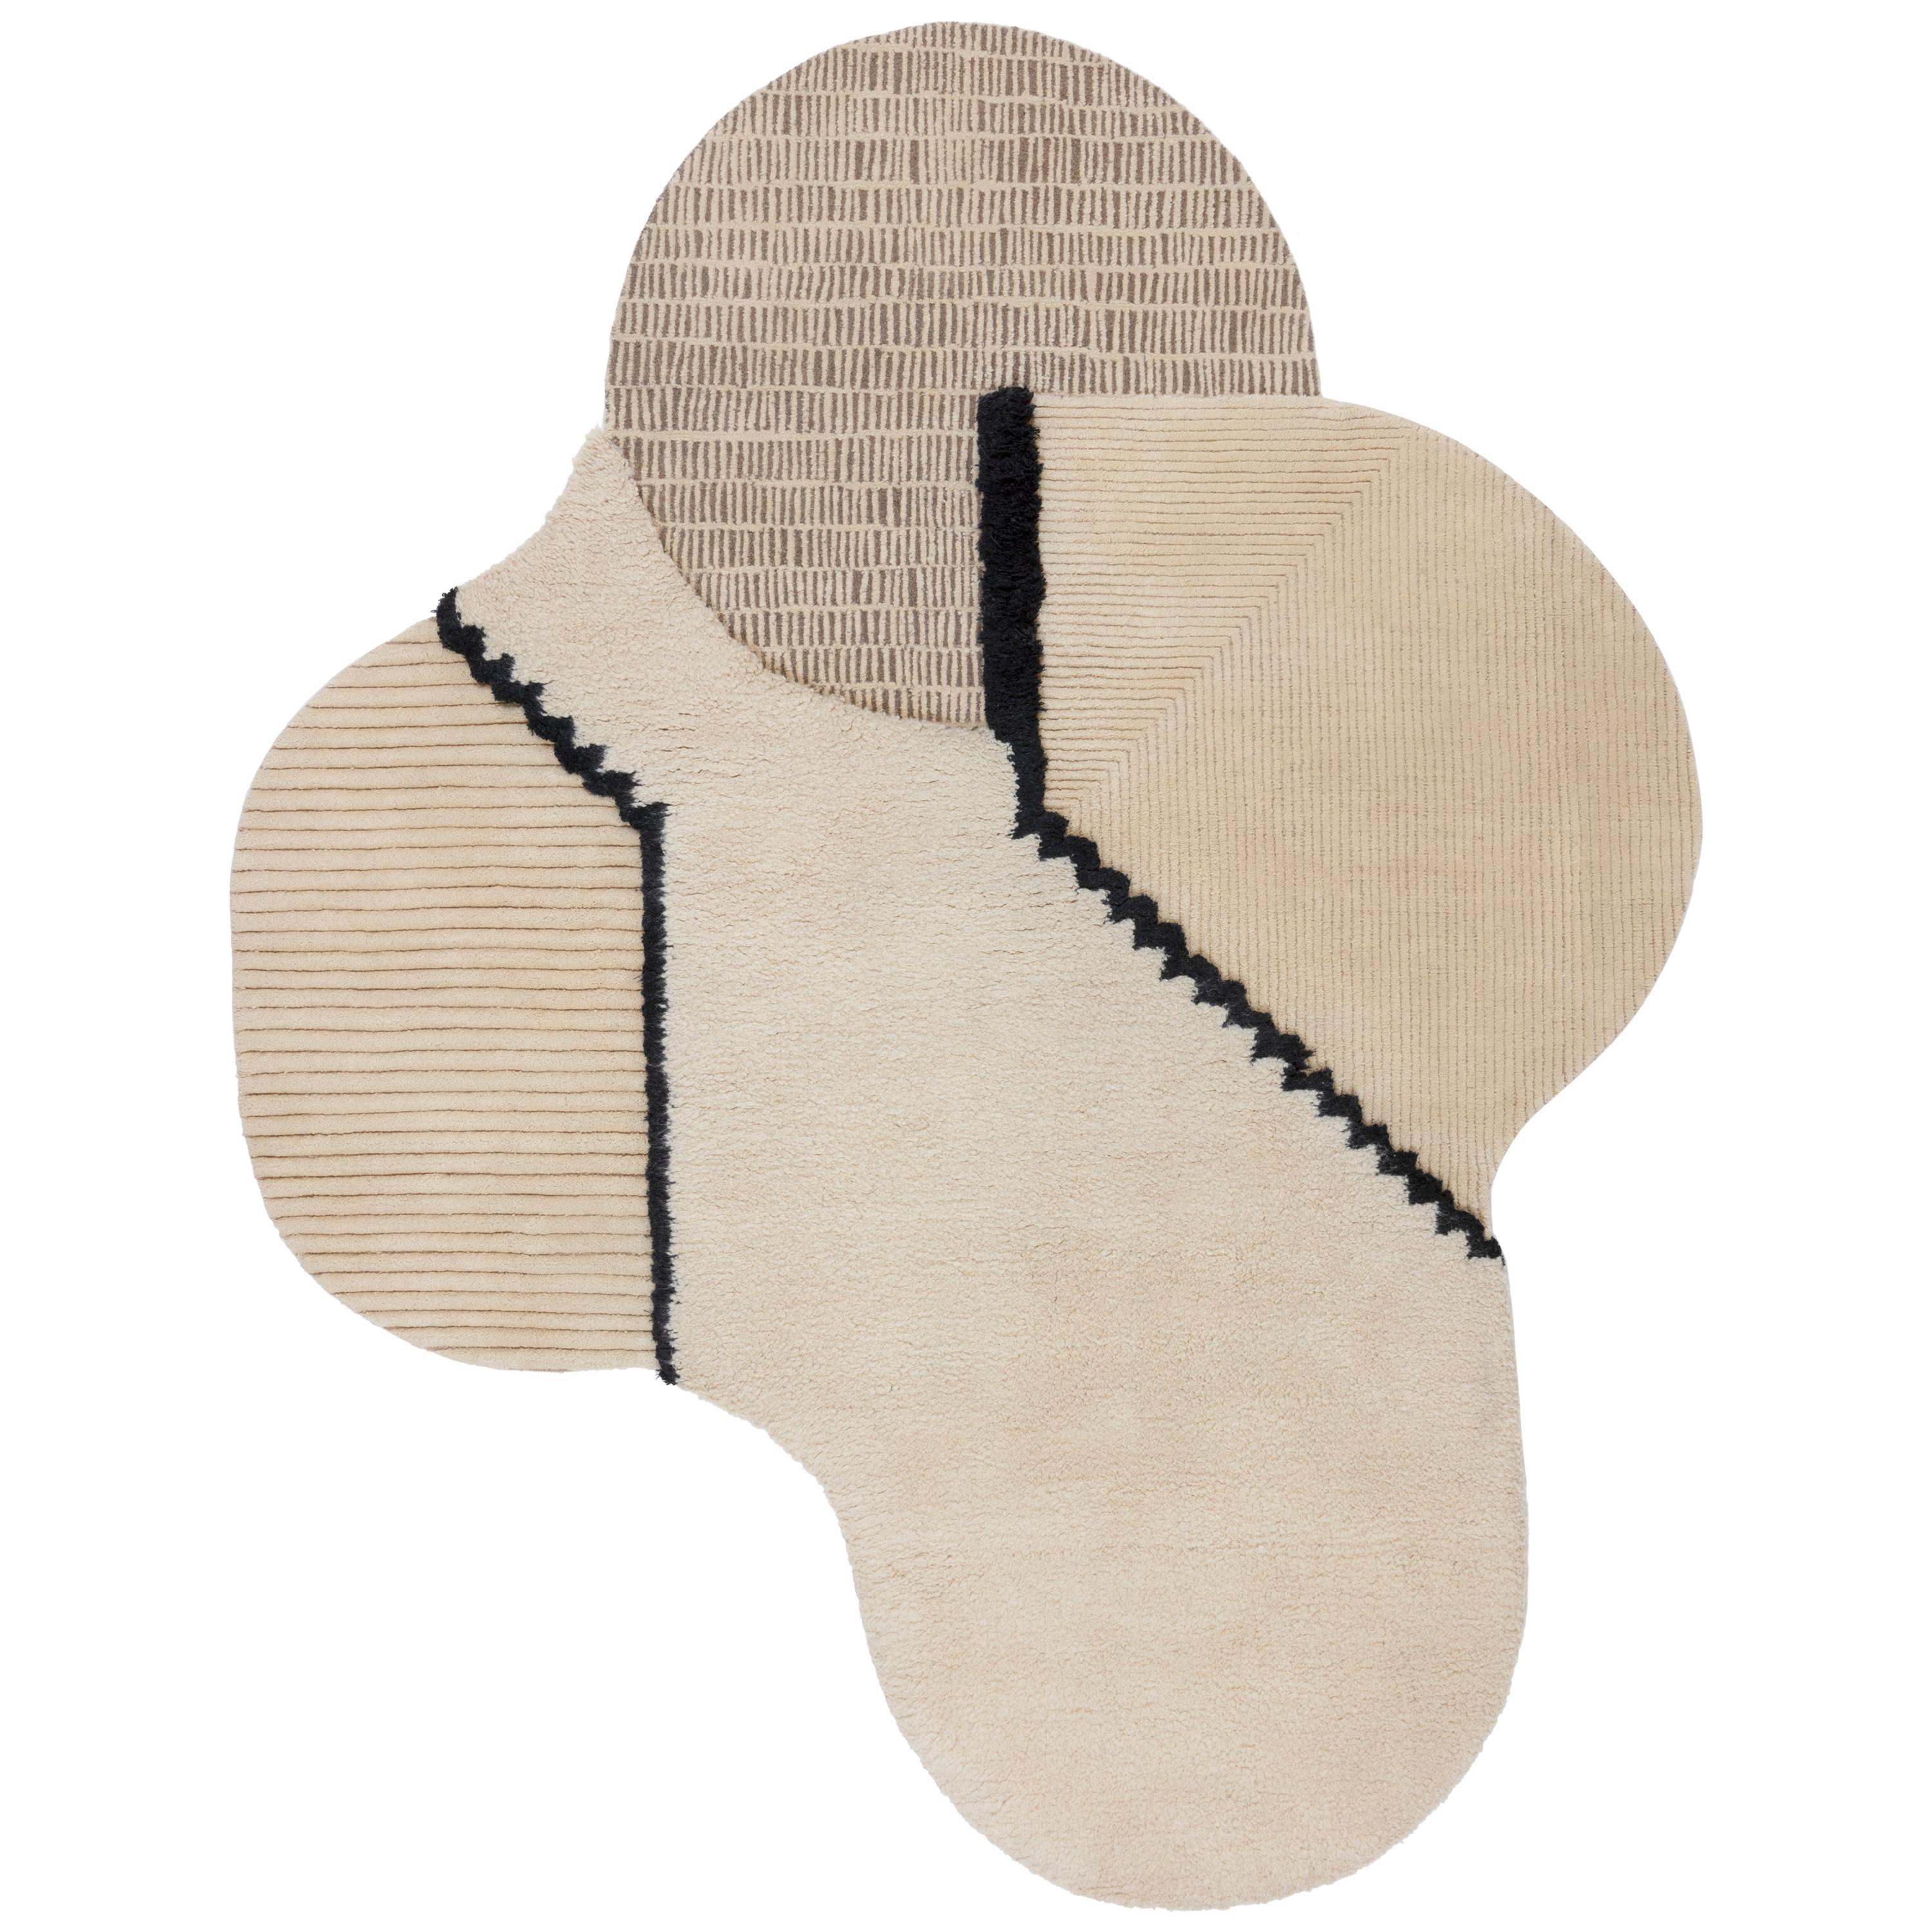 CC-Tapis Lunar Addiction Rectangle Undyed Rug by Studiopepe